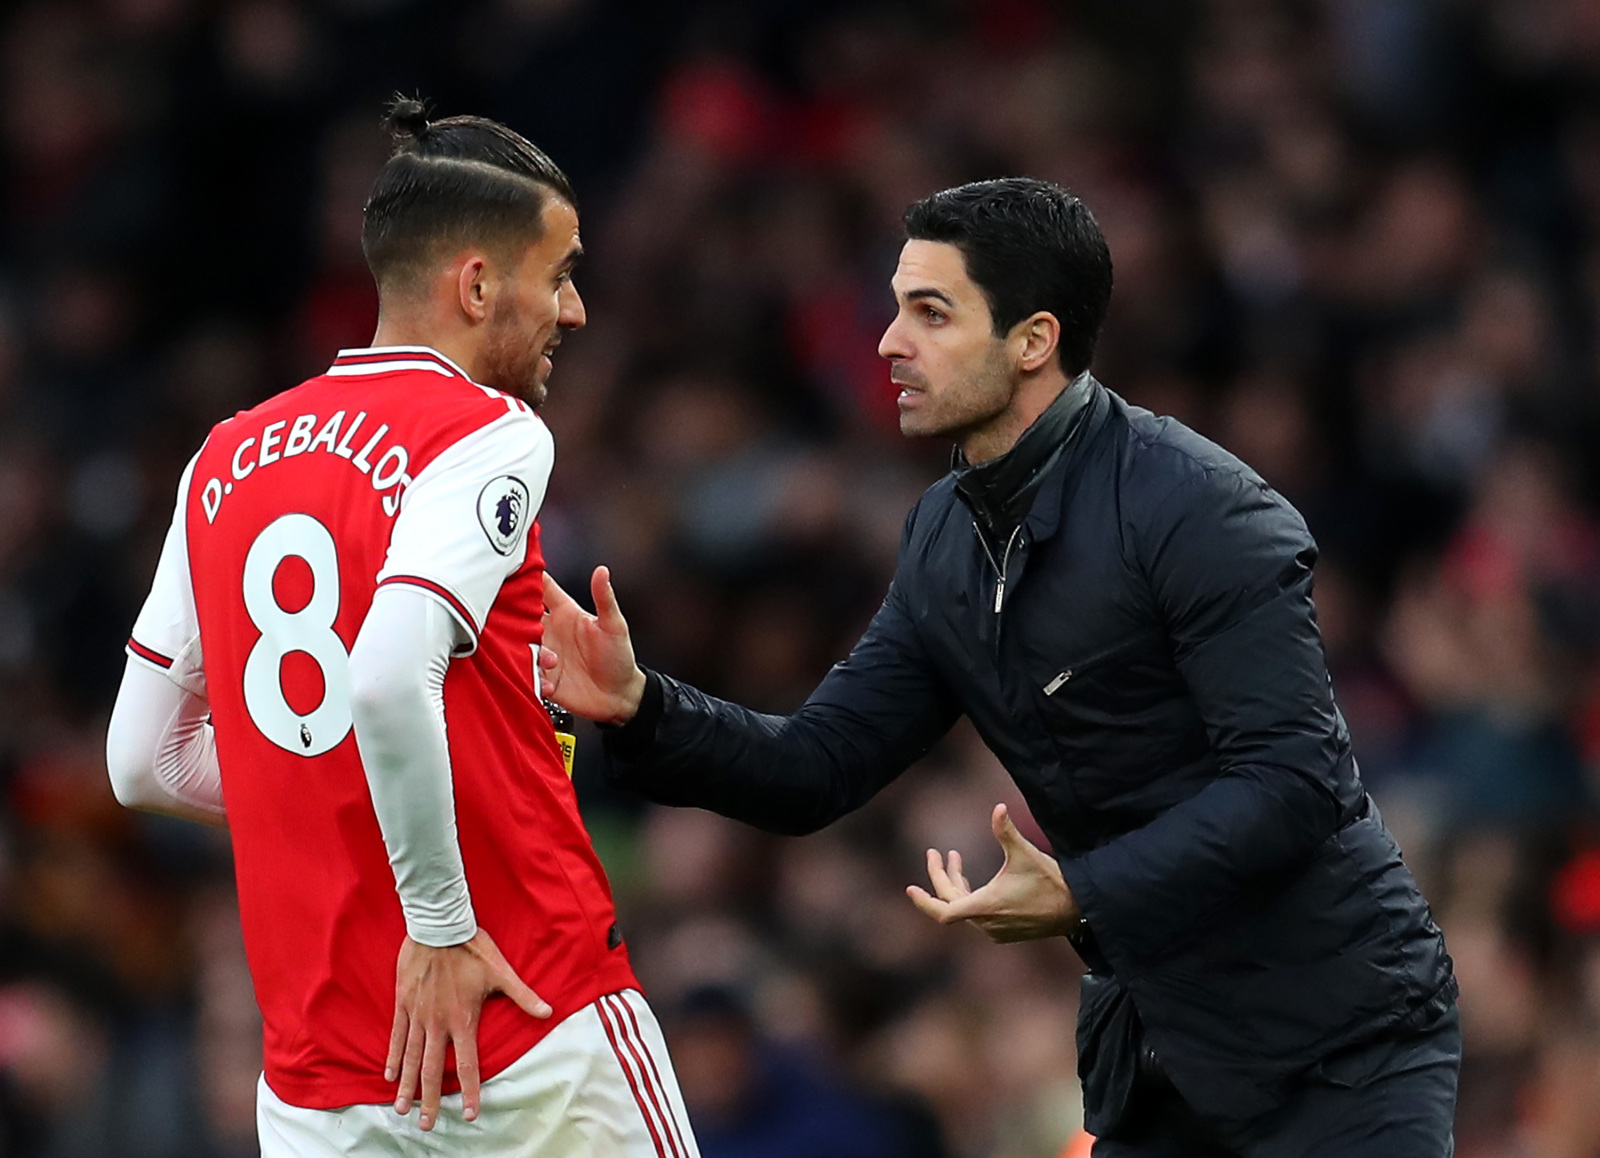 Arsenal: Mikel Arteta has found his midfield